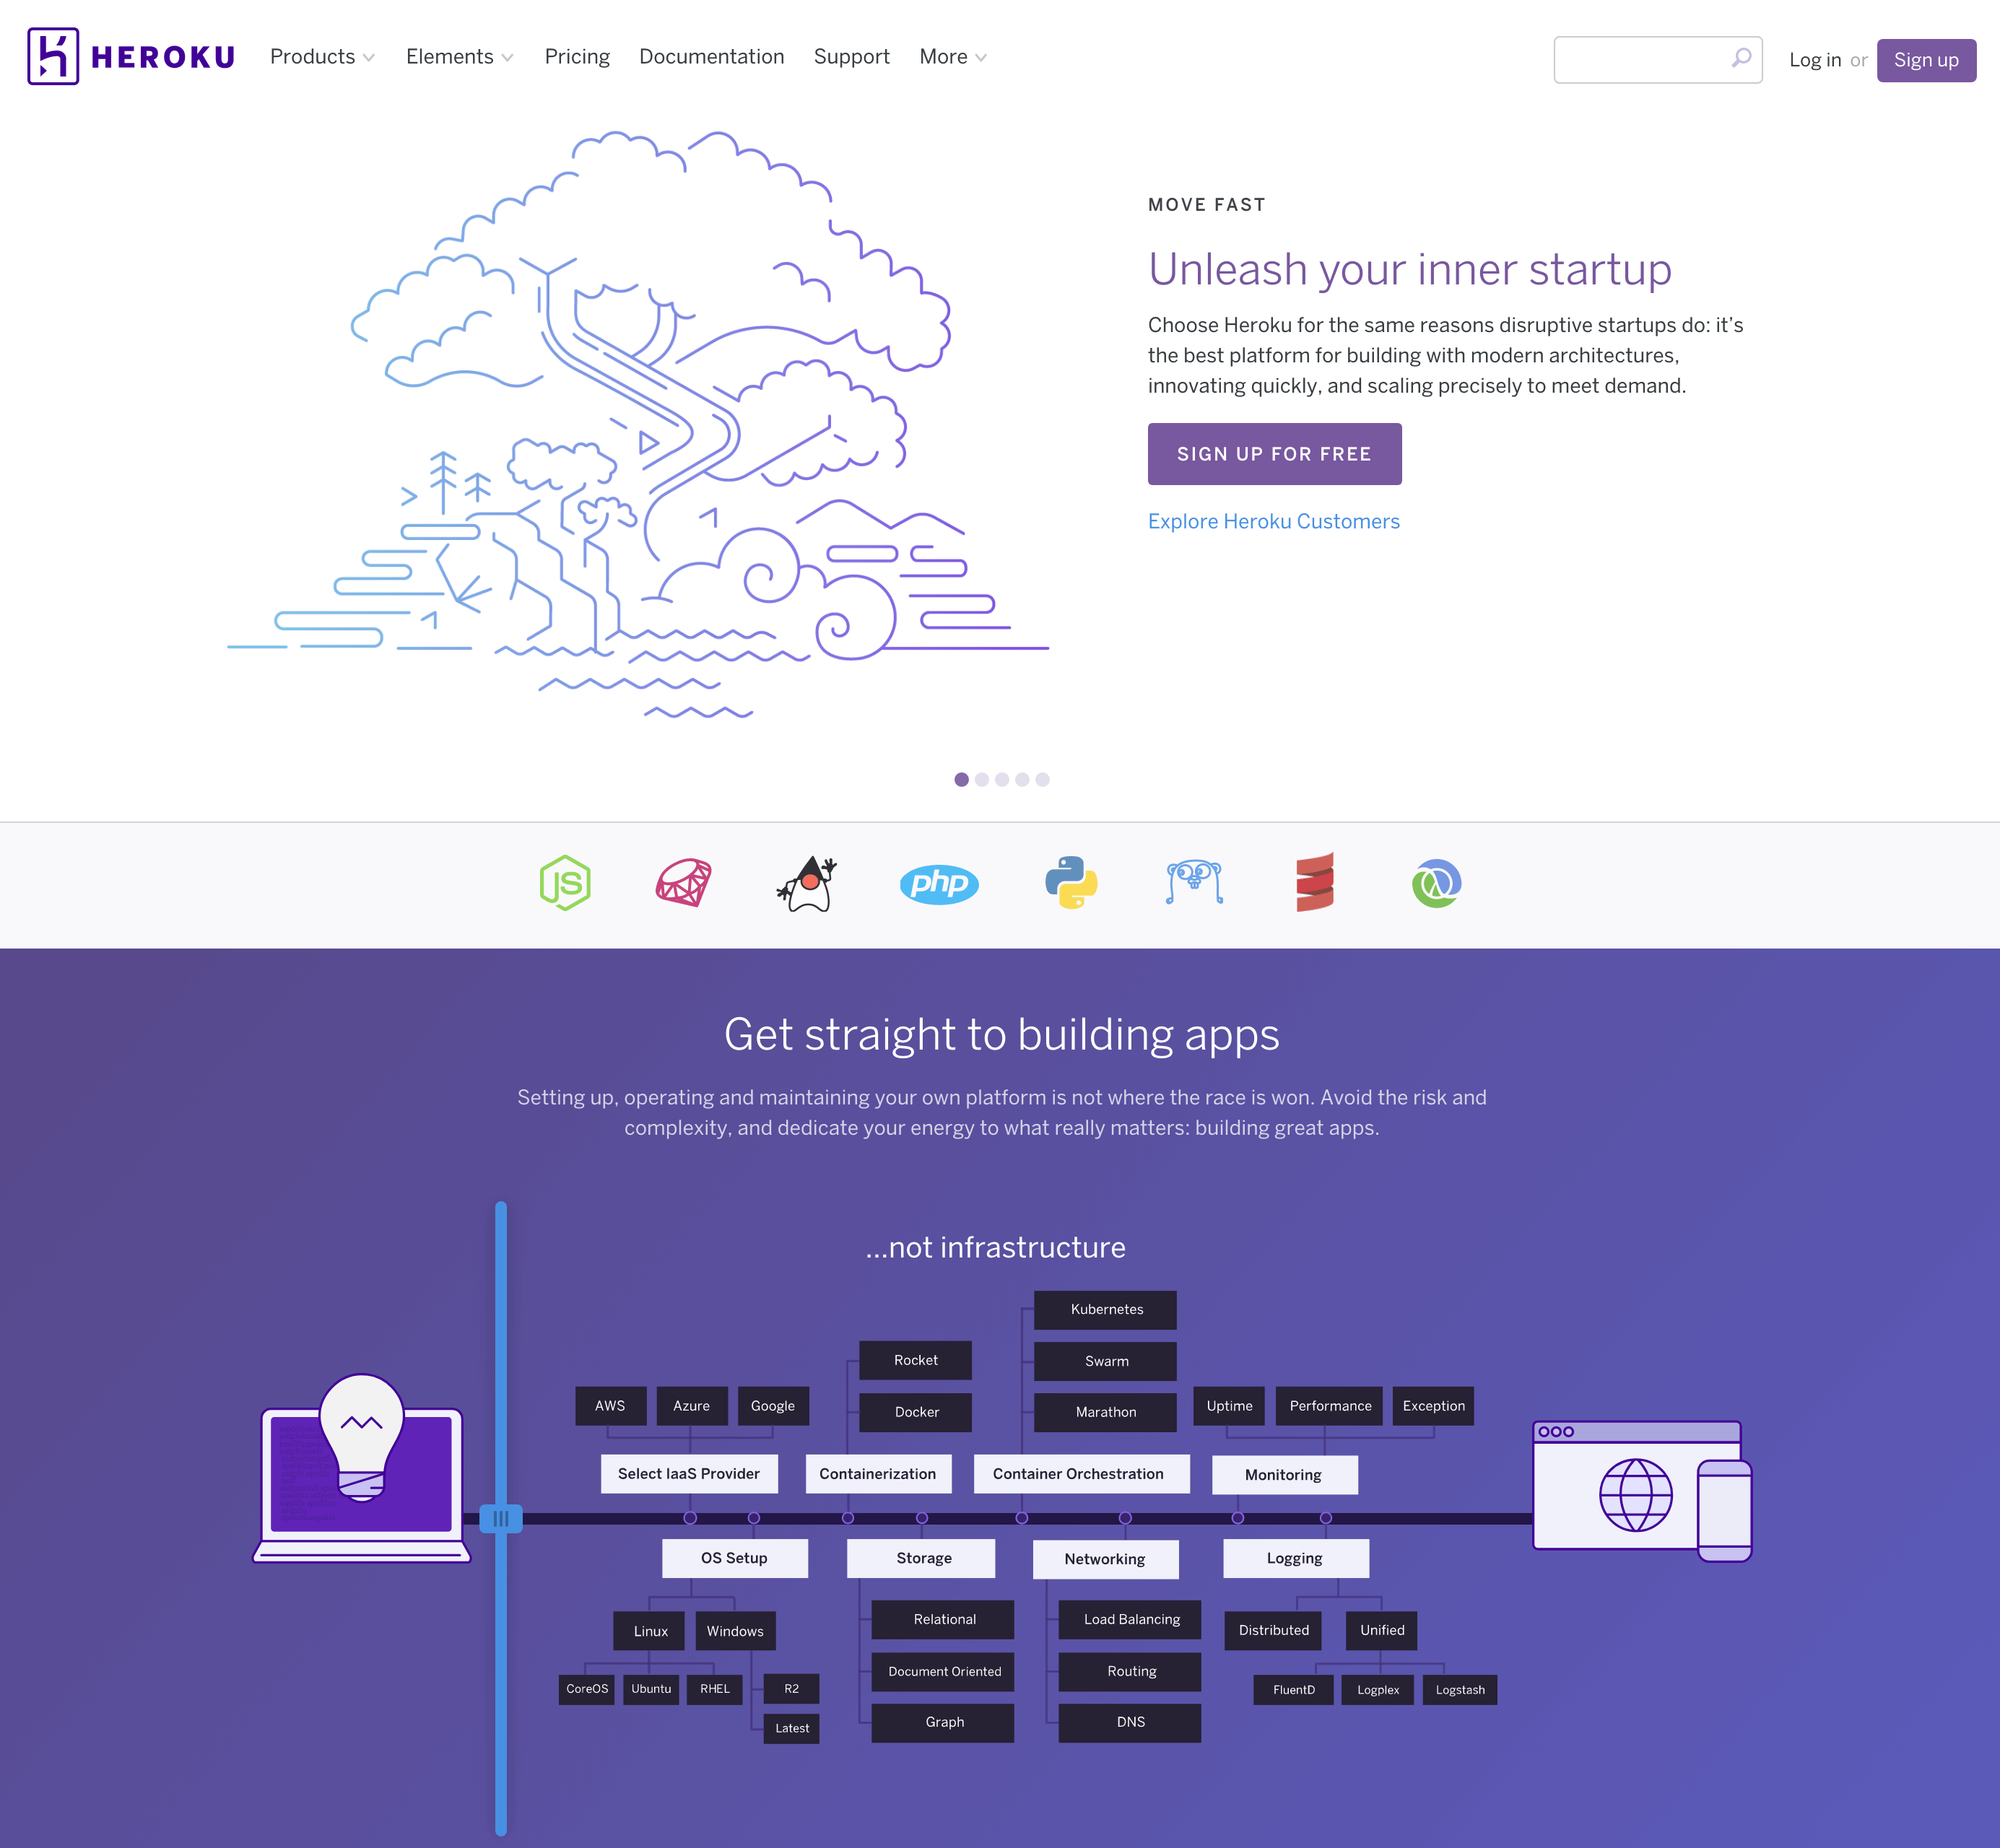 Screenshot of the use of alternating backgrounds in Heroku's design